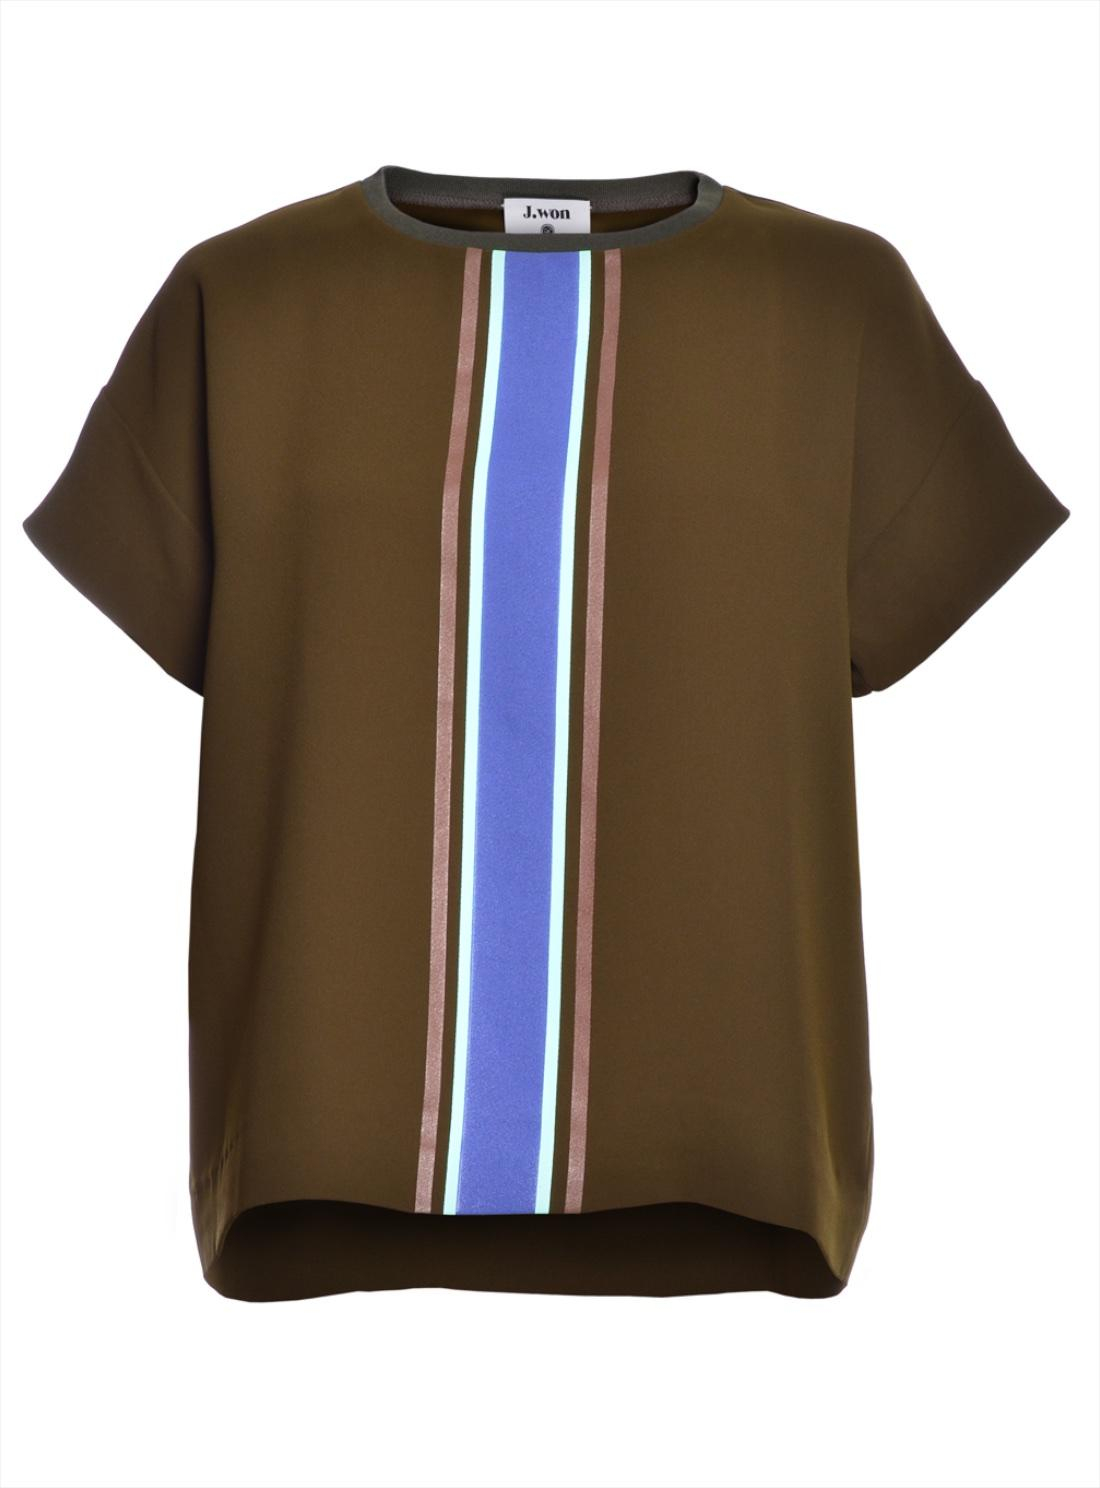 Lyst J Won Knit T Shirt In Olive Green With Stripe In Brown